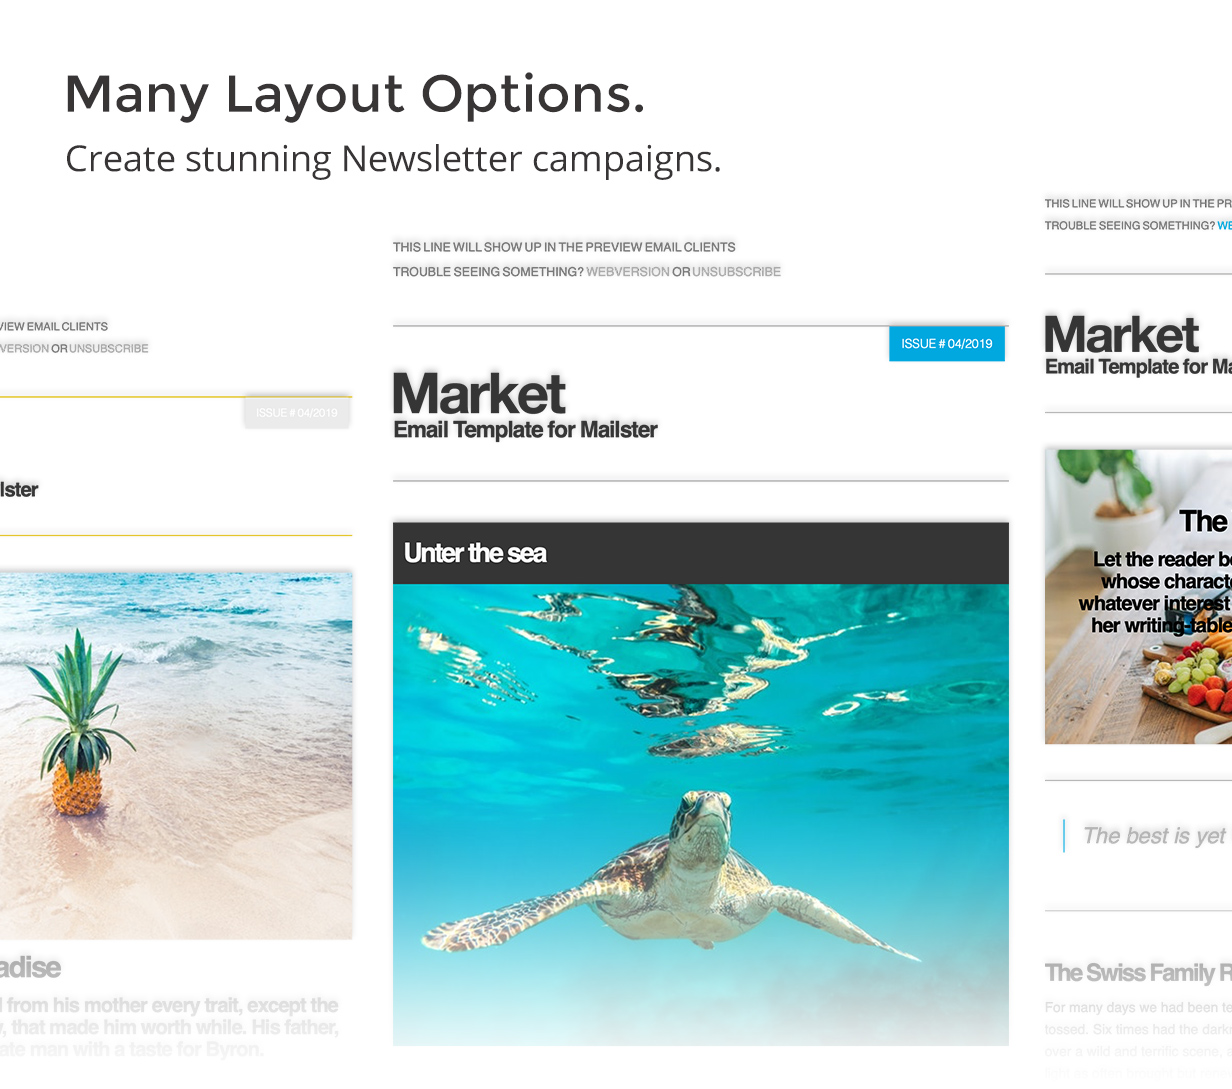 variations - Market - Email Template for Mailster